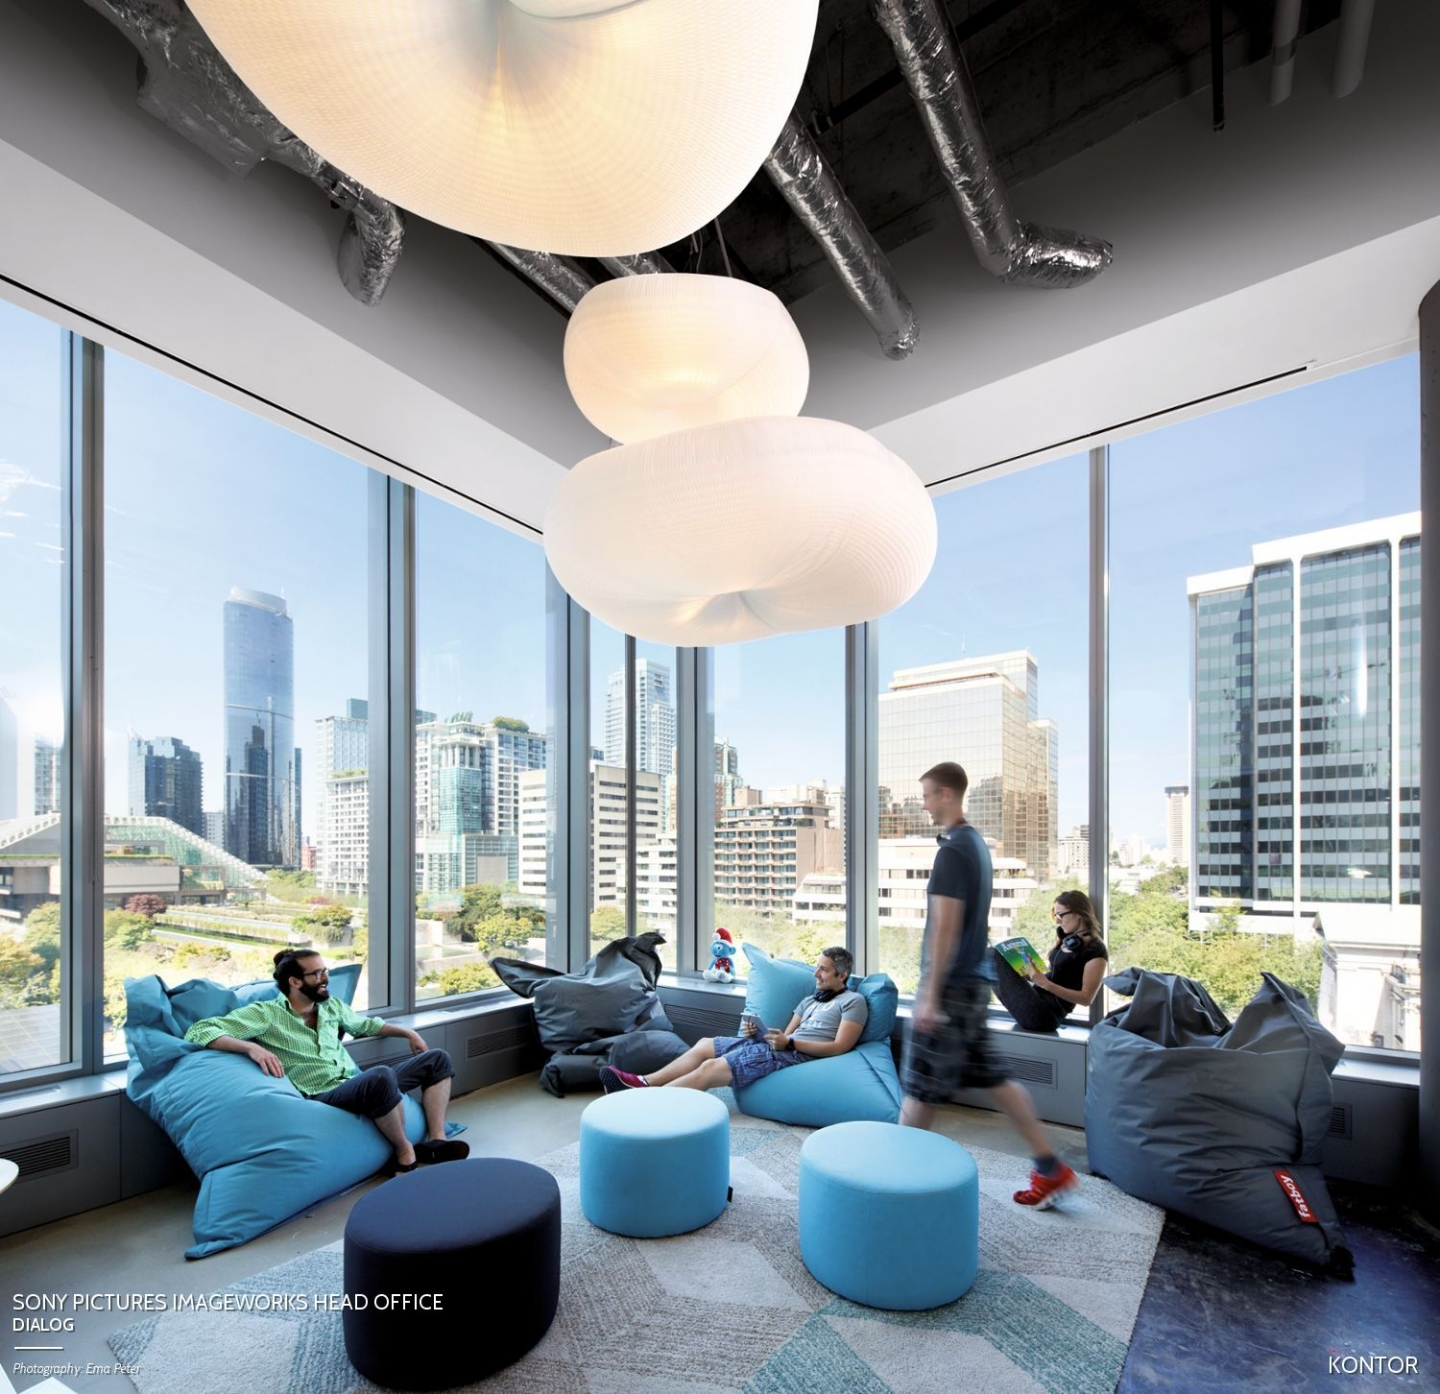 molo cloud light pendants at the Sony Pictures Imageworks Head Office in Vancouver, Canada.